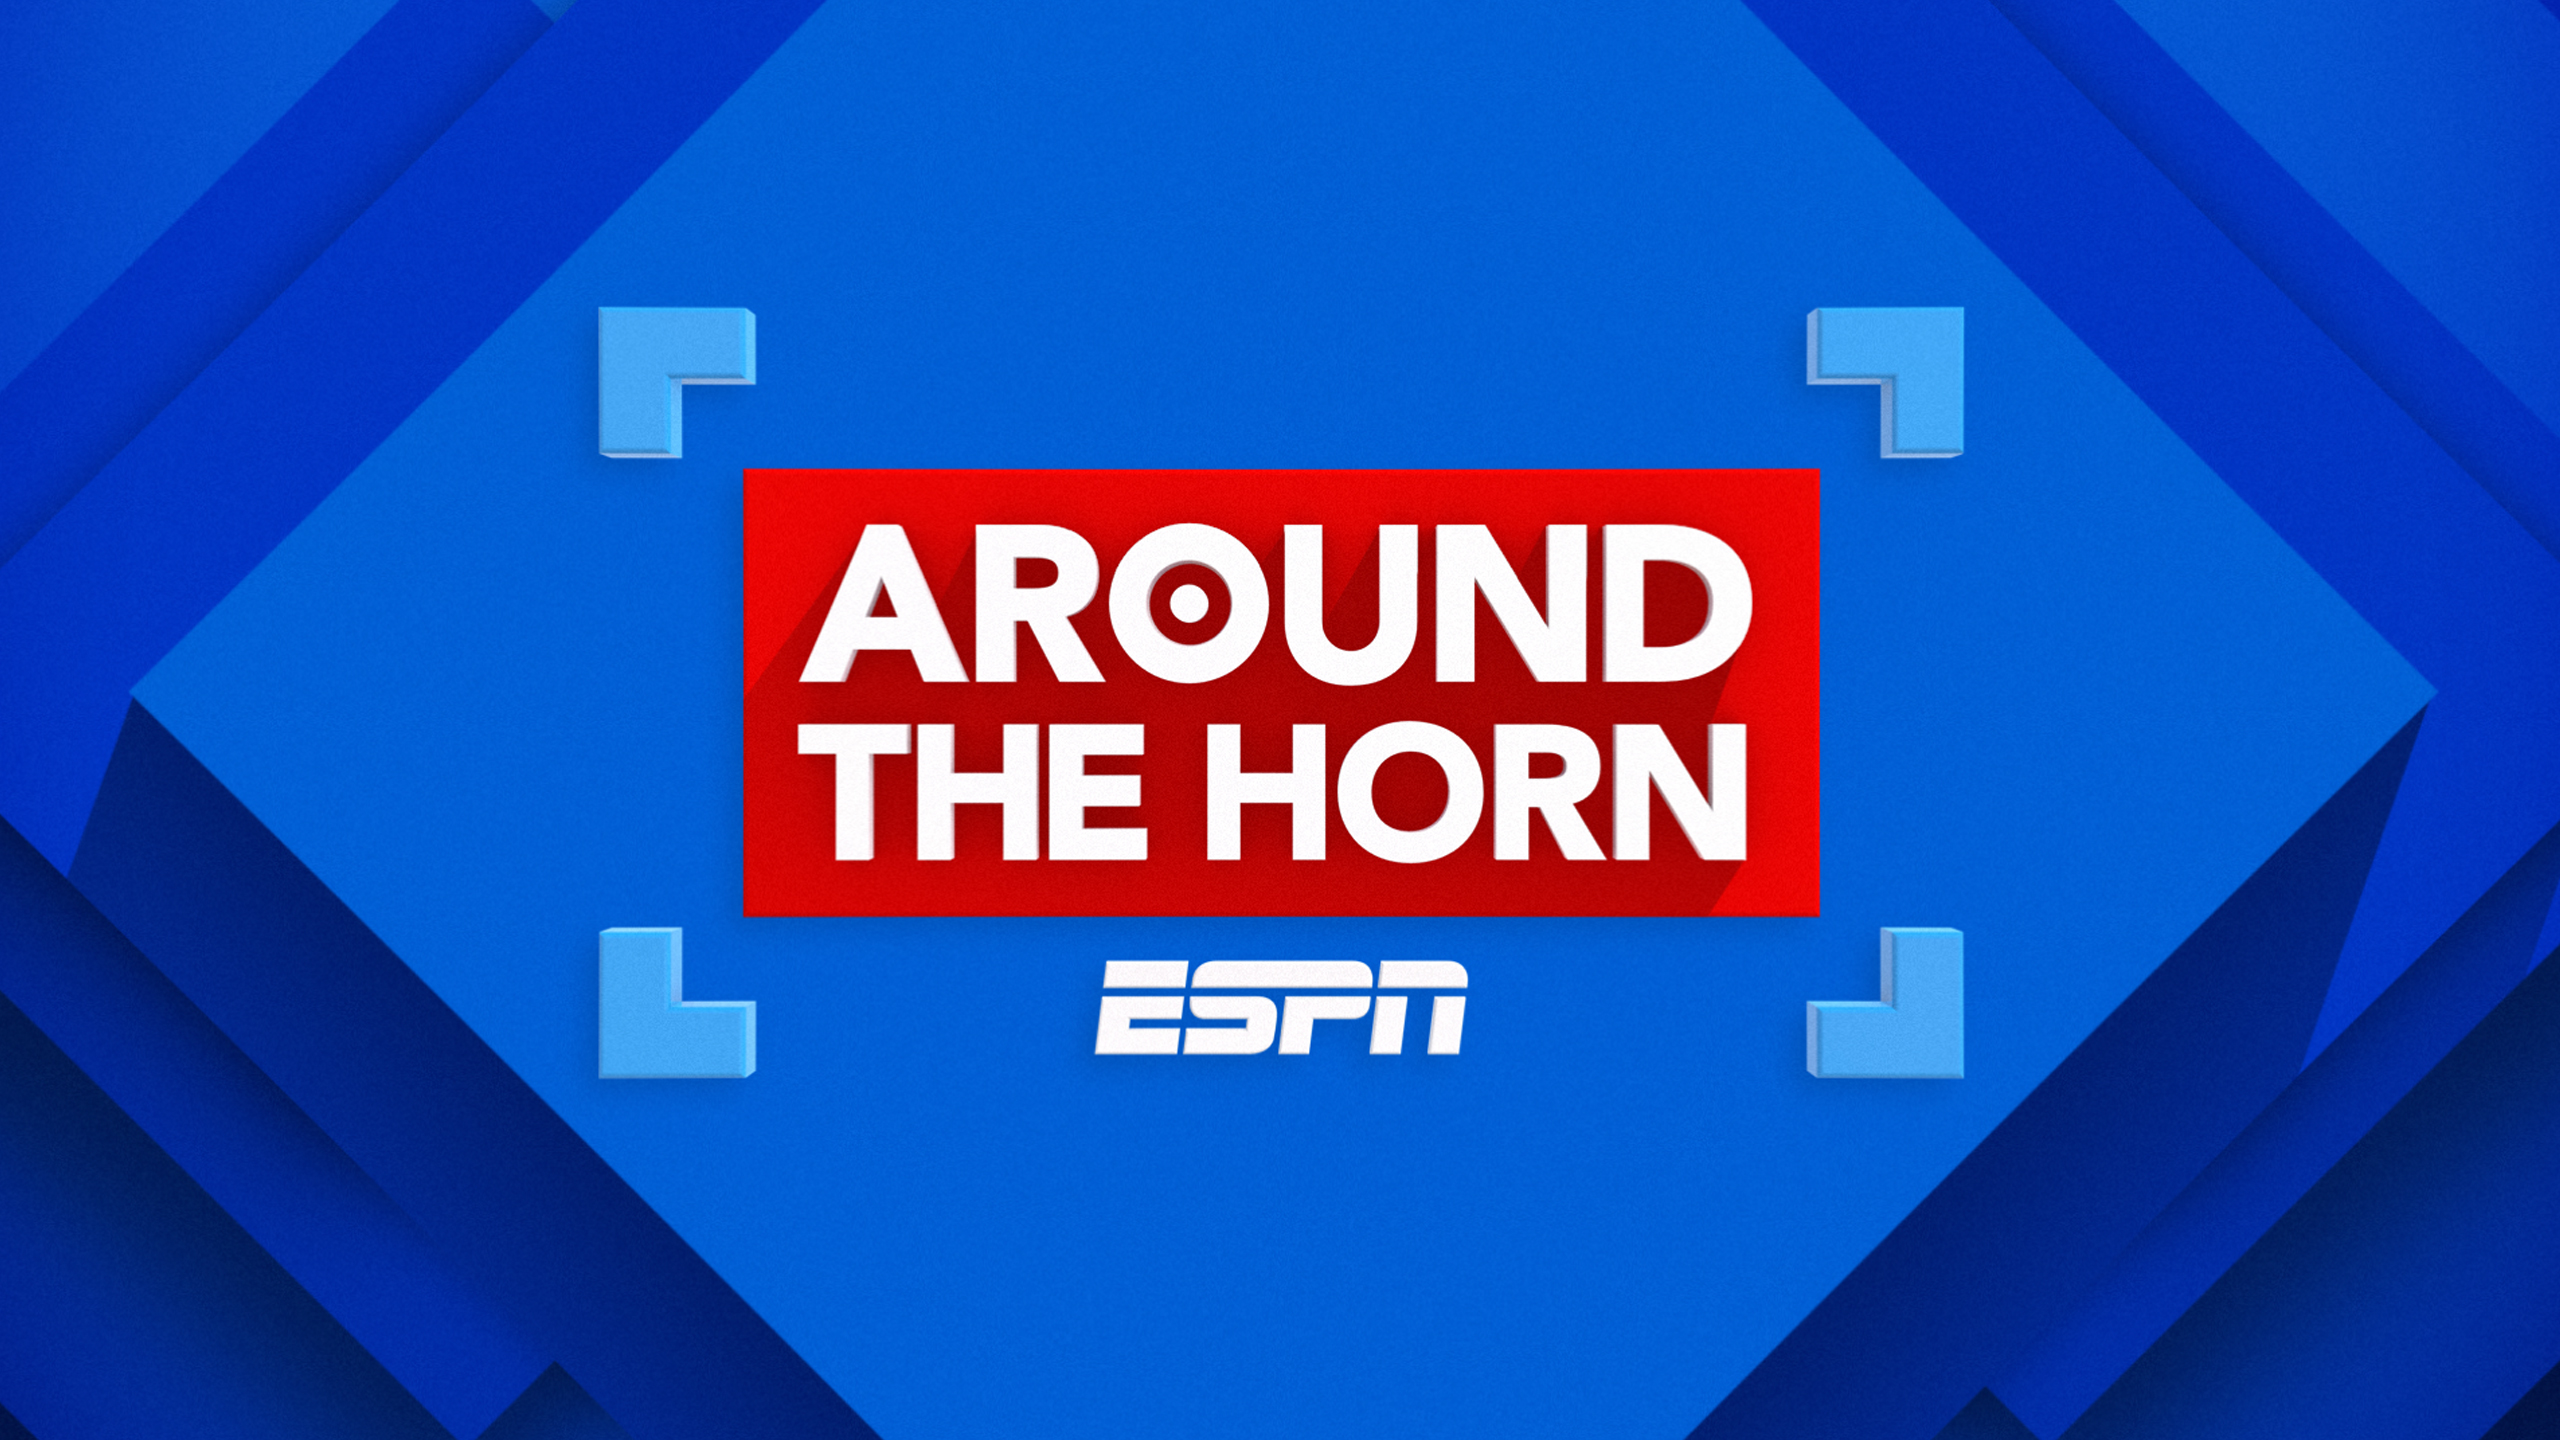 Around The Horn Presented by Jose Cuervo